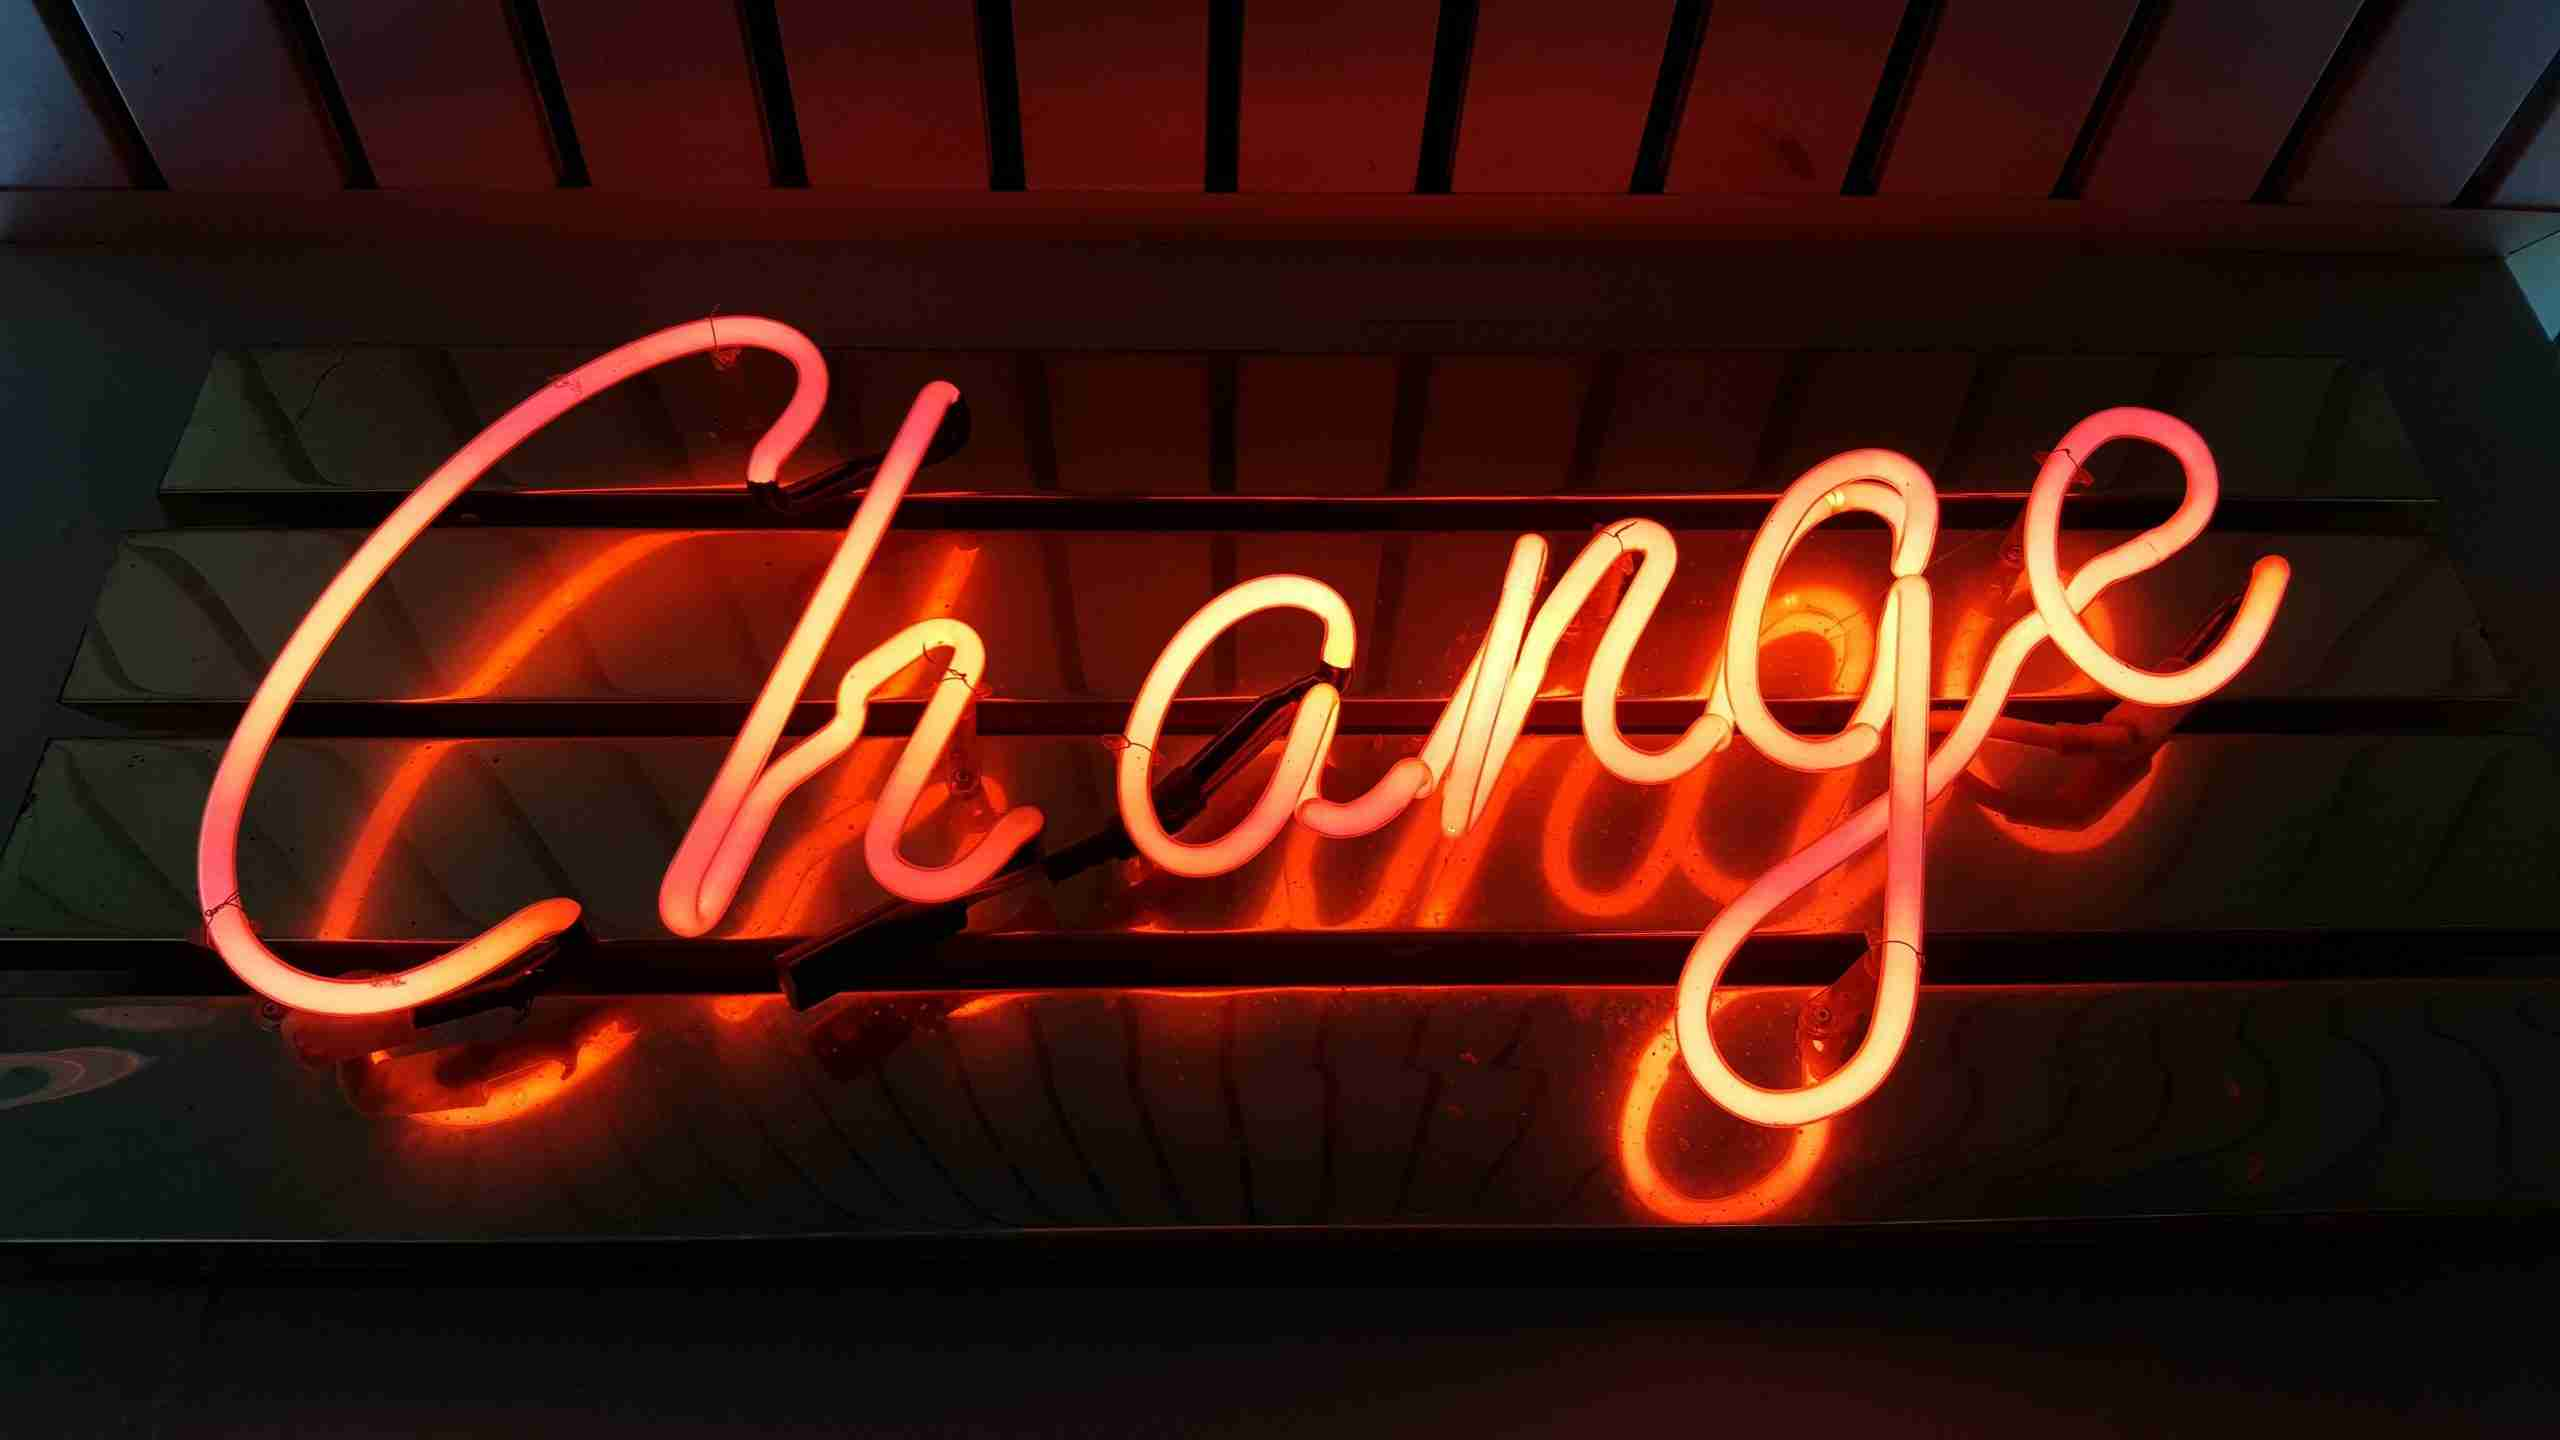 Change of career at 40? How to plan for a life or career change.